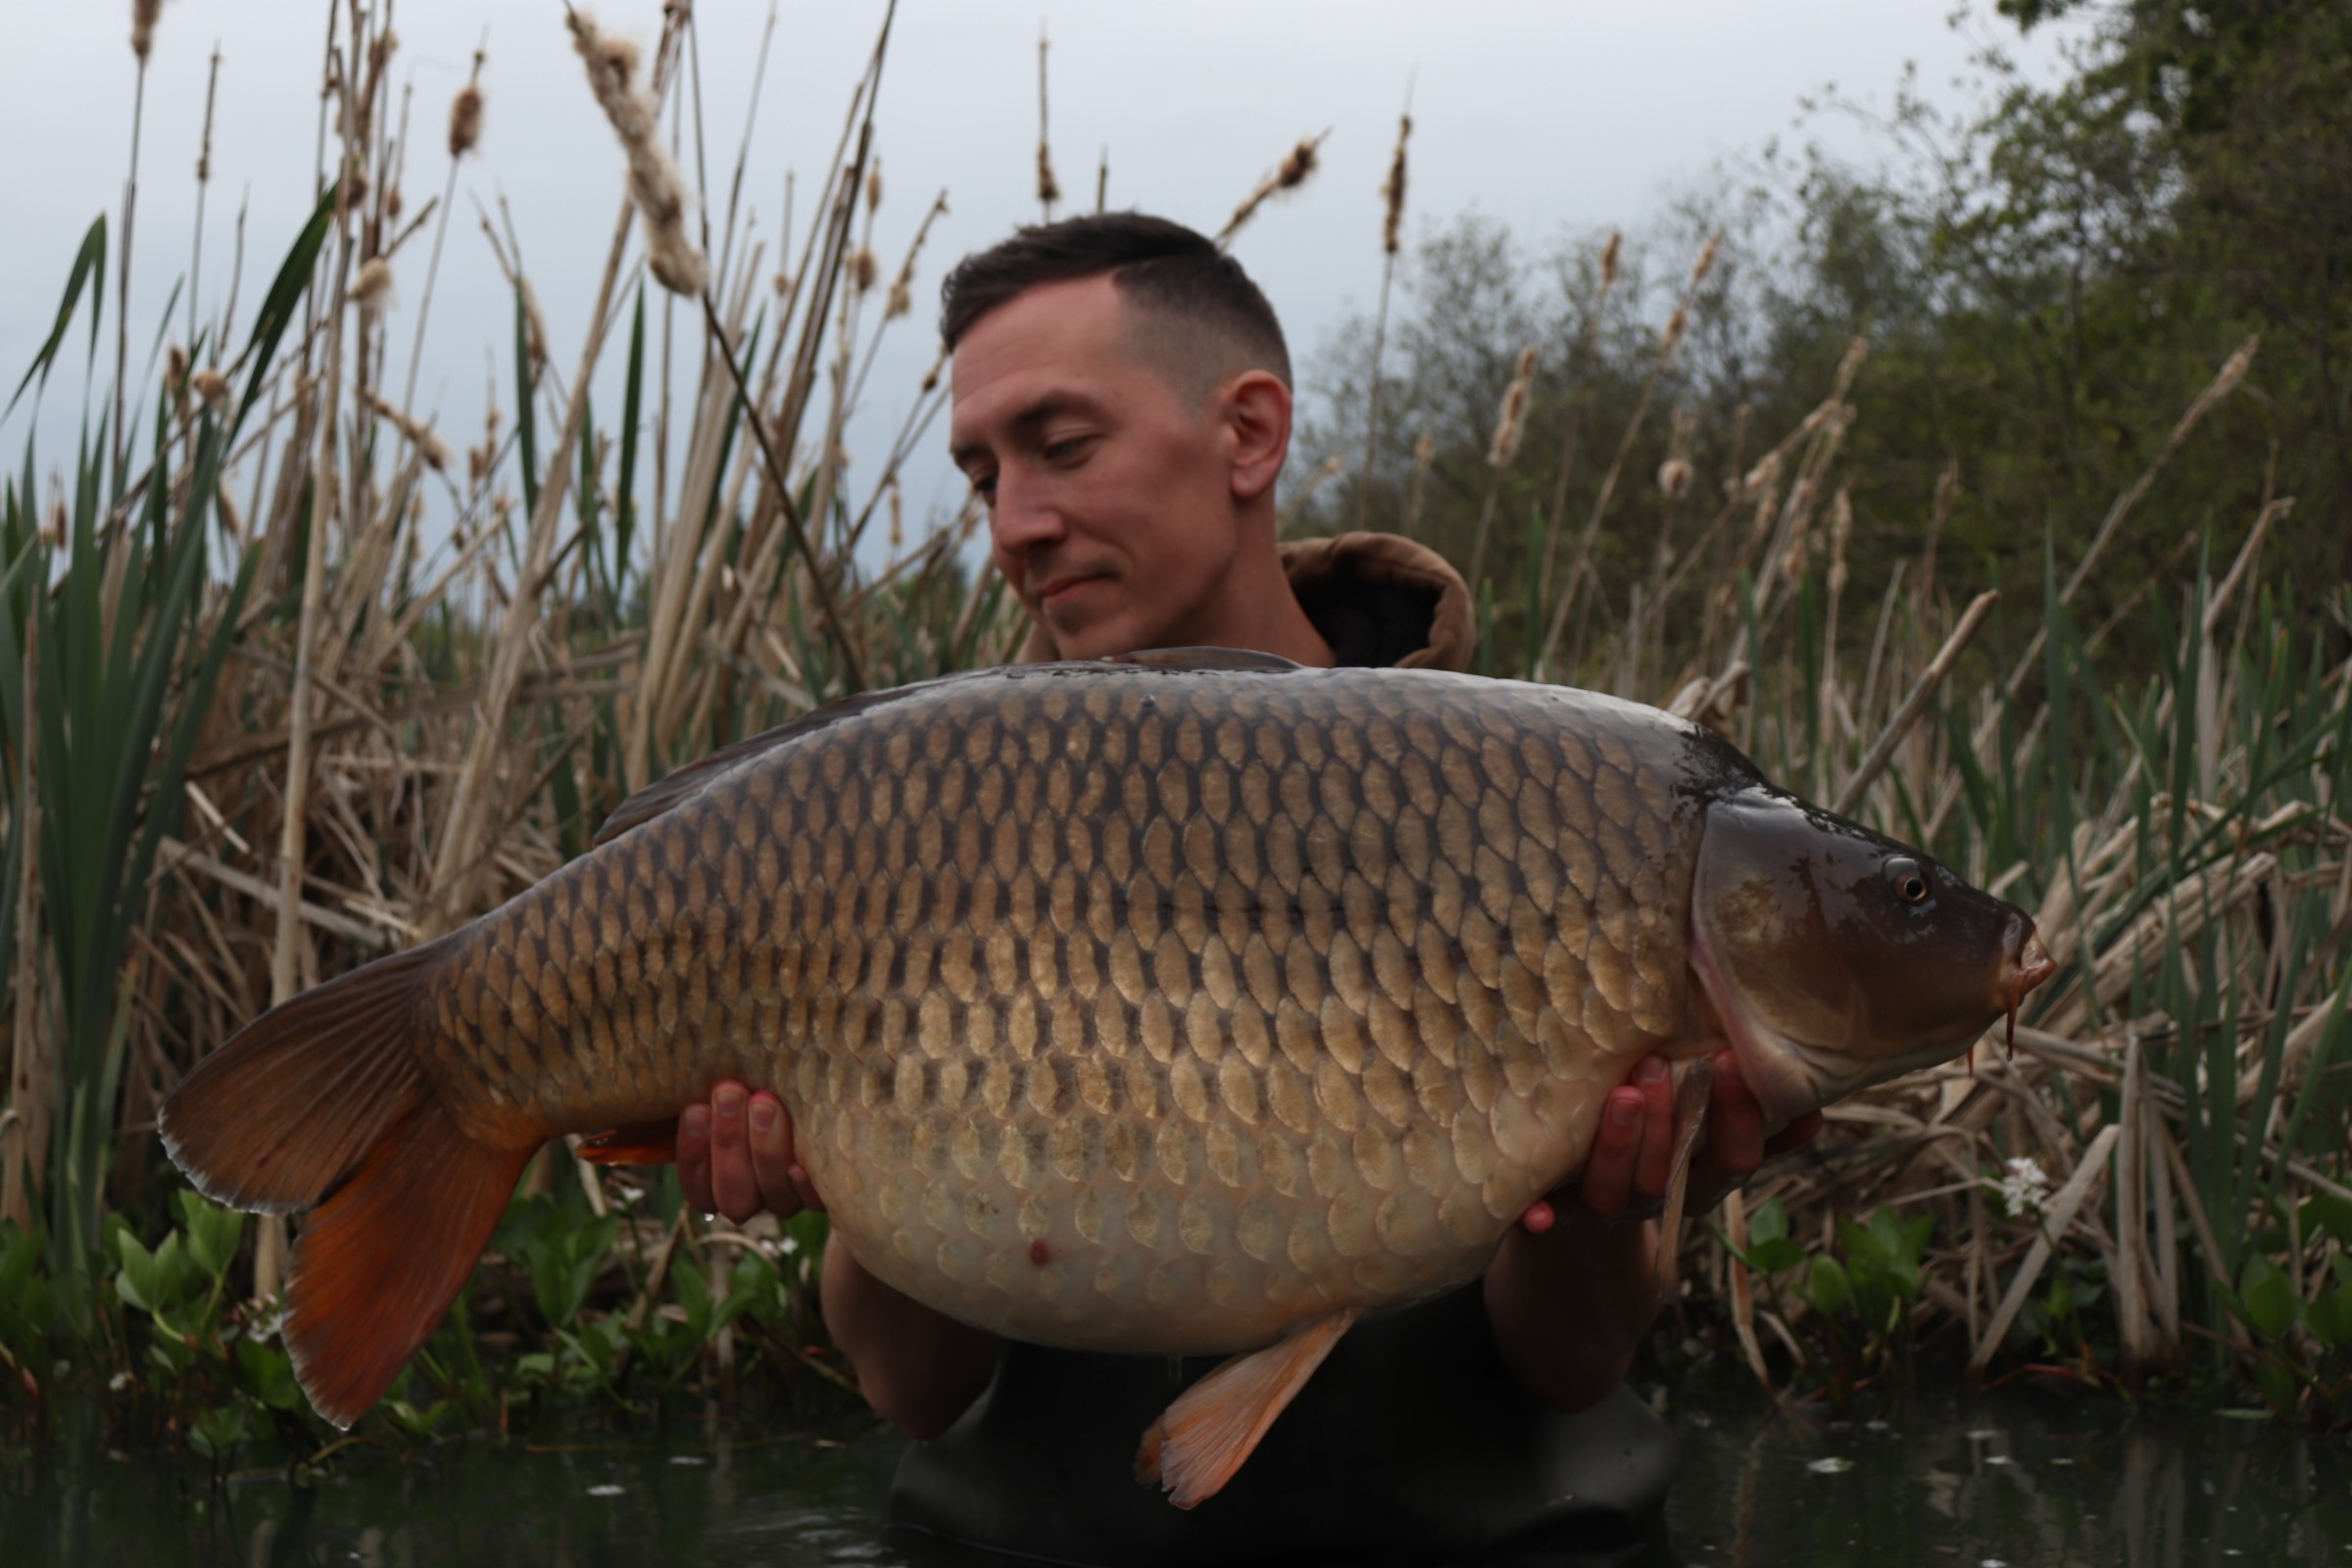 33lb 12oz  caught on